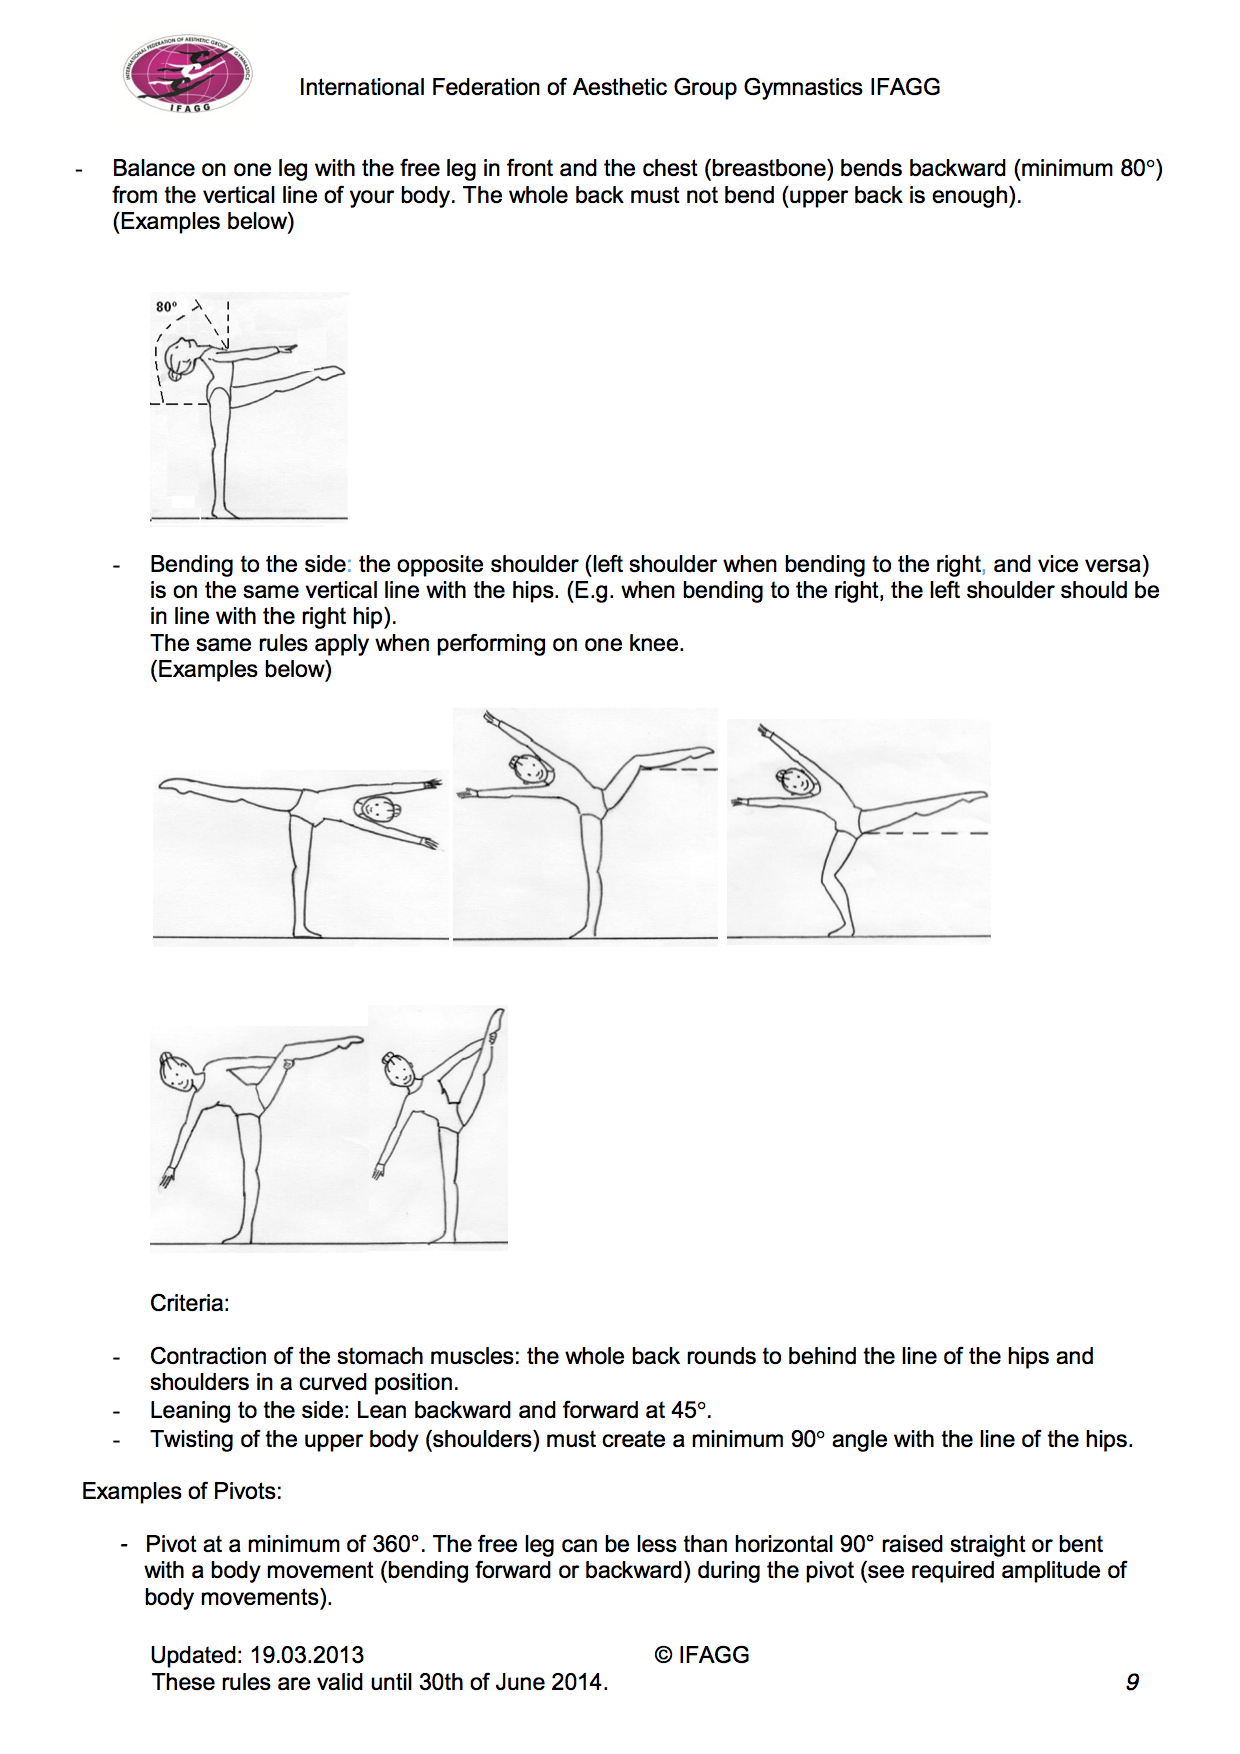 IFAGG Competition rules9.jpg